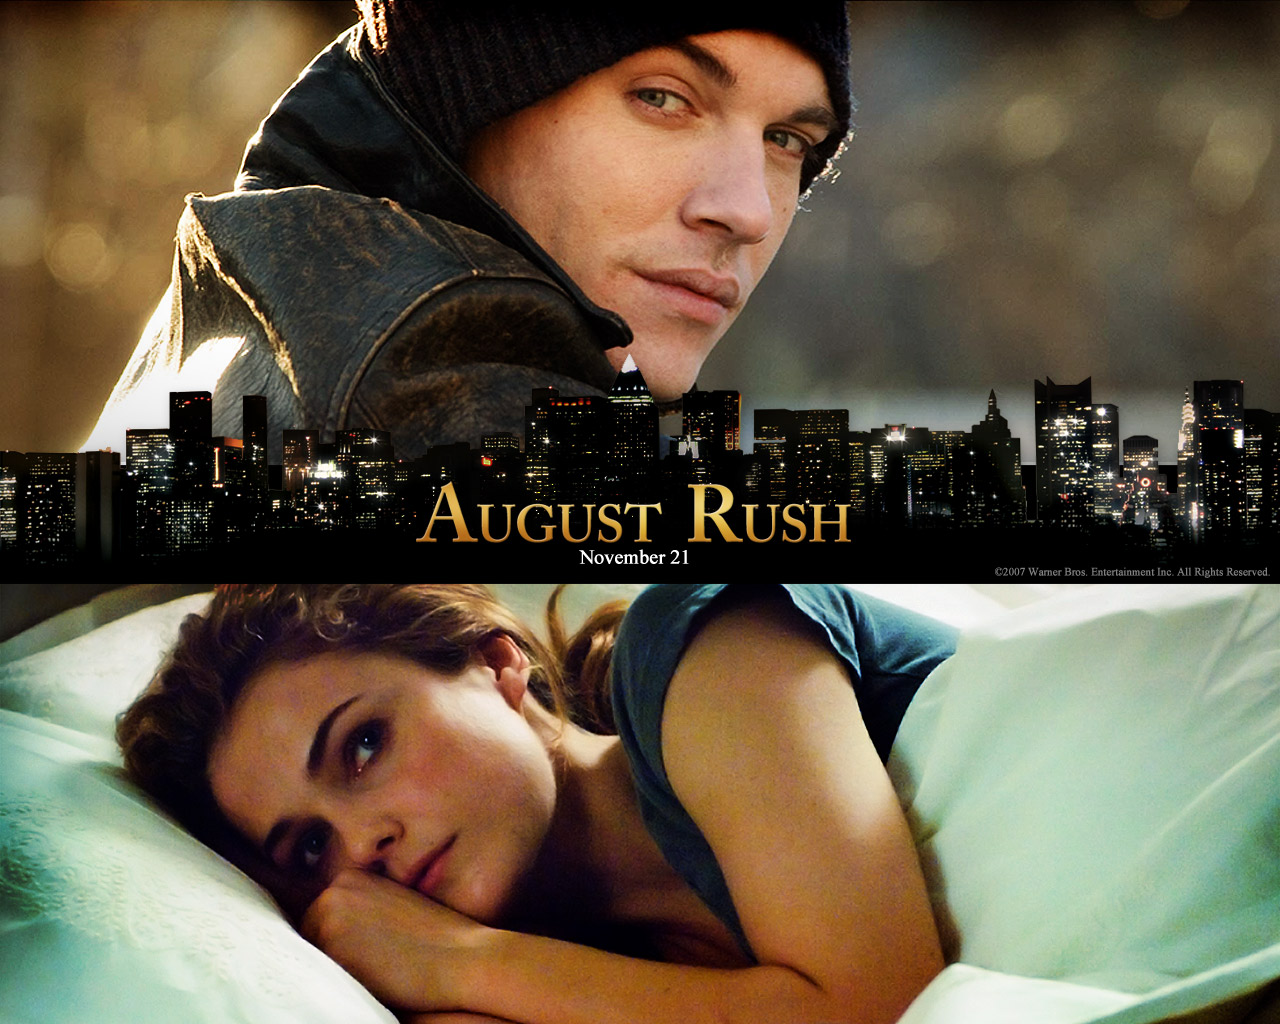 august rush August rush has 95 ratings and 9 reviews komal said: the complaint most commonly associated with this particular piece of art is that it is a fairy tale.